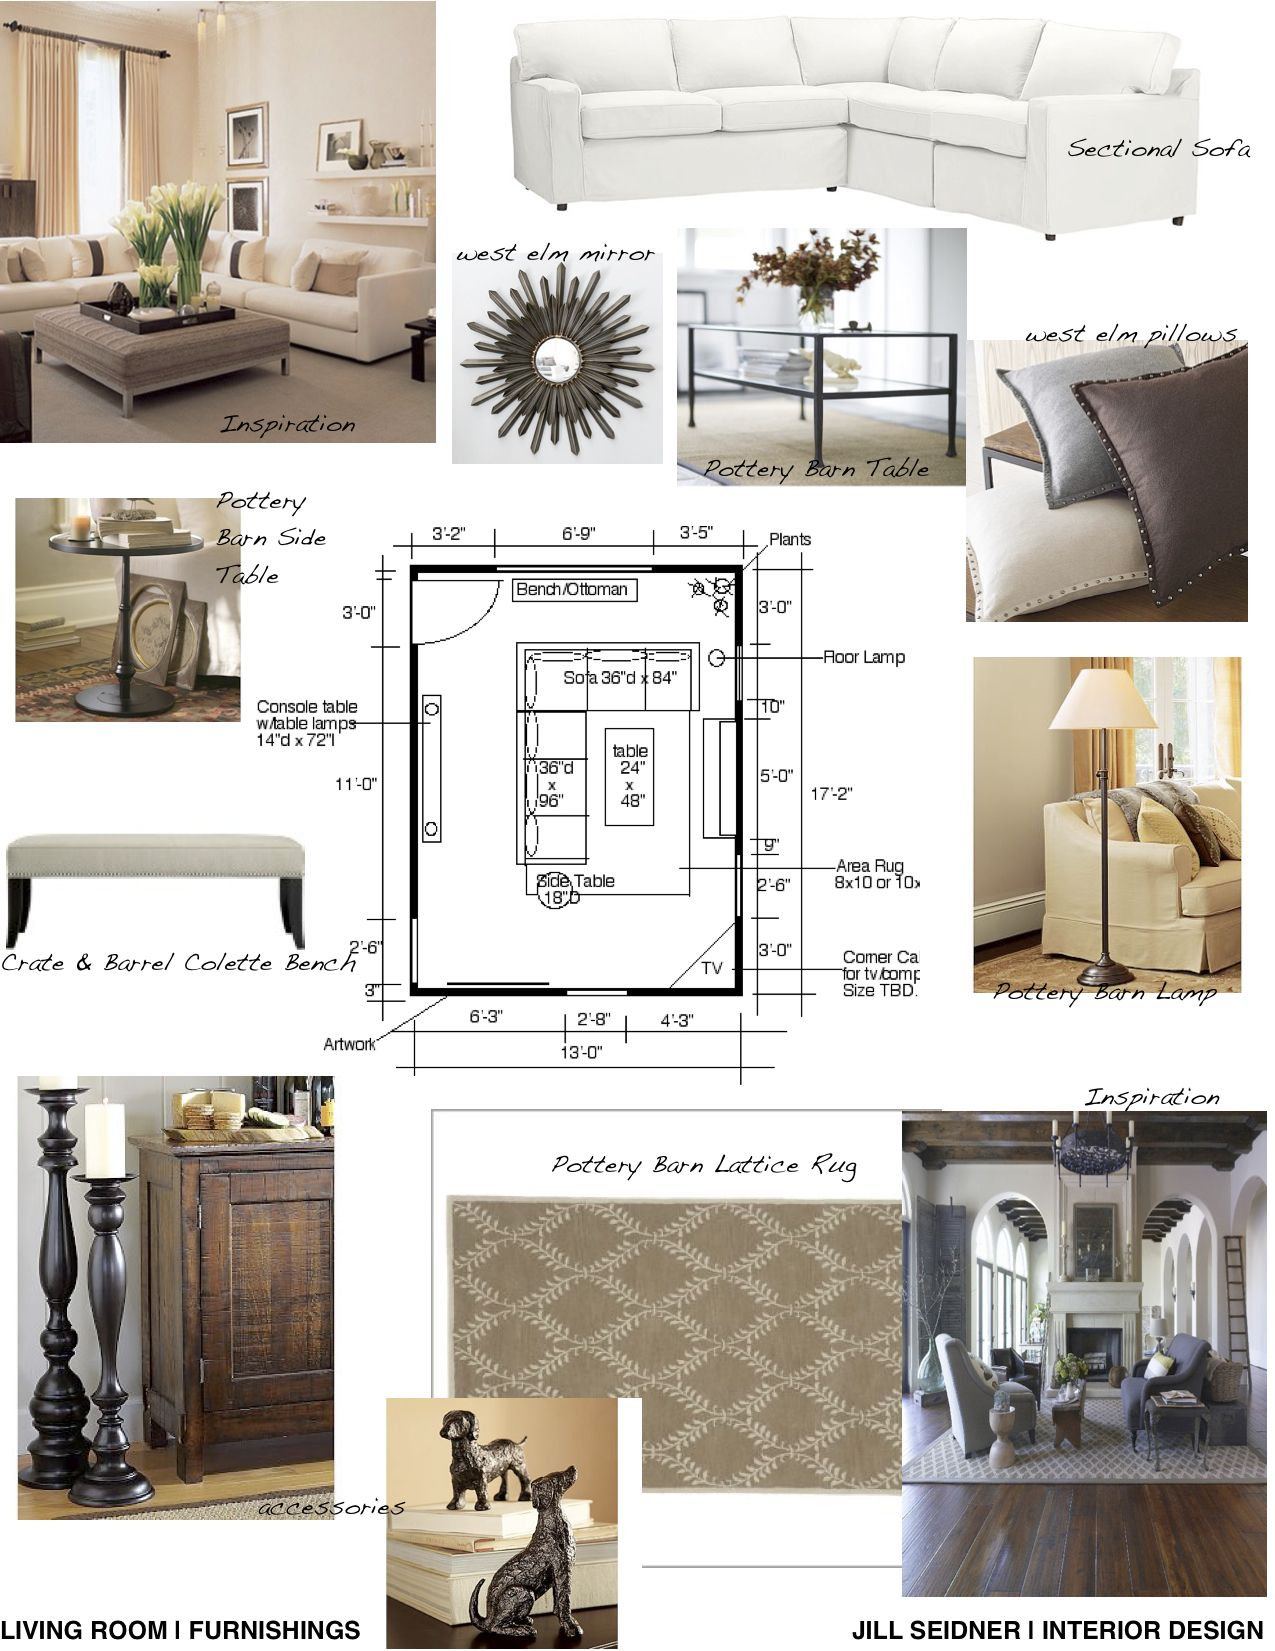 Concept Board For Living Room With Images Interior Design